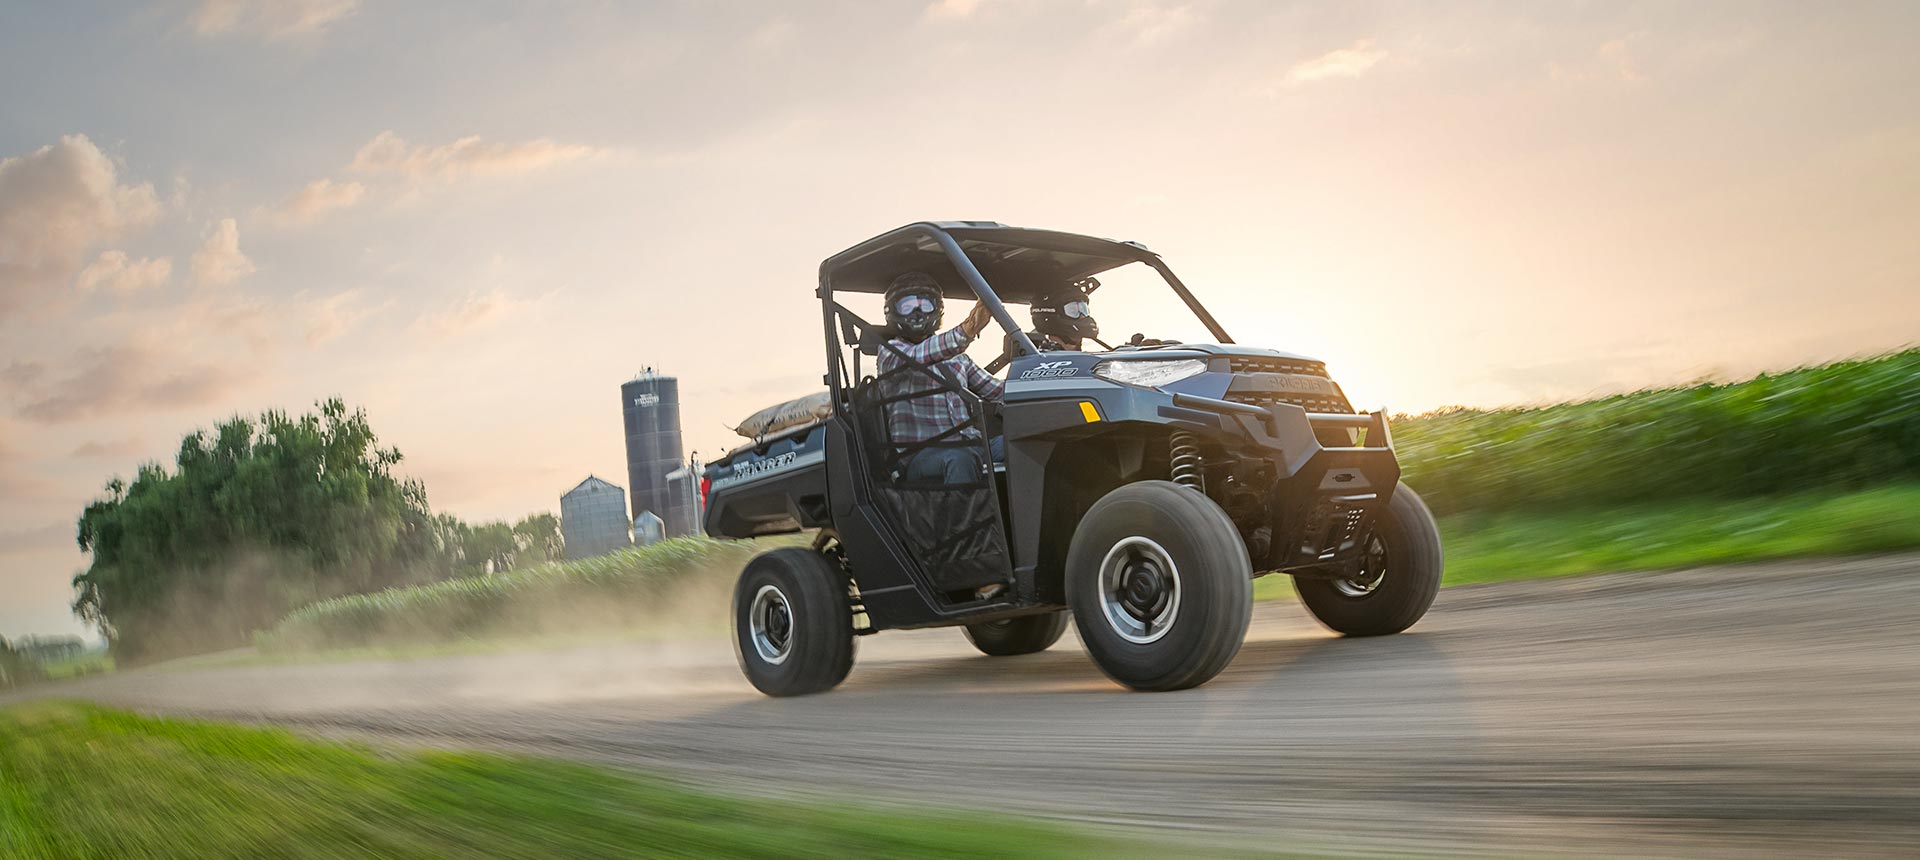 2019 Polaris Ranger XP 1000 EPS in Yuba City, California - Photo 11